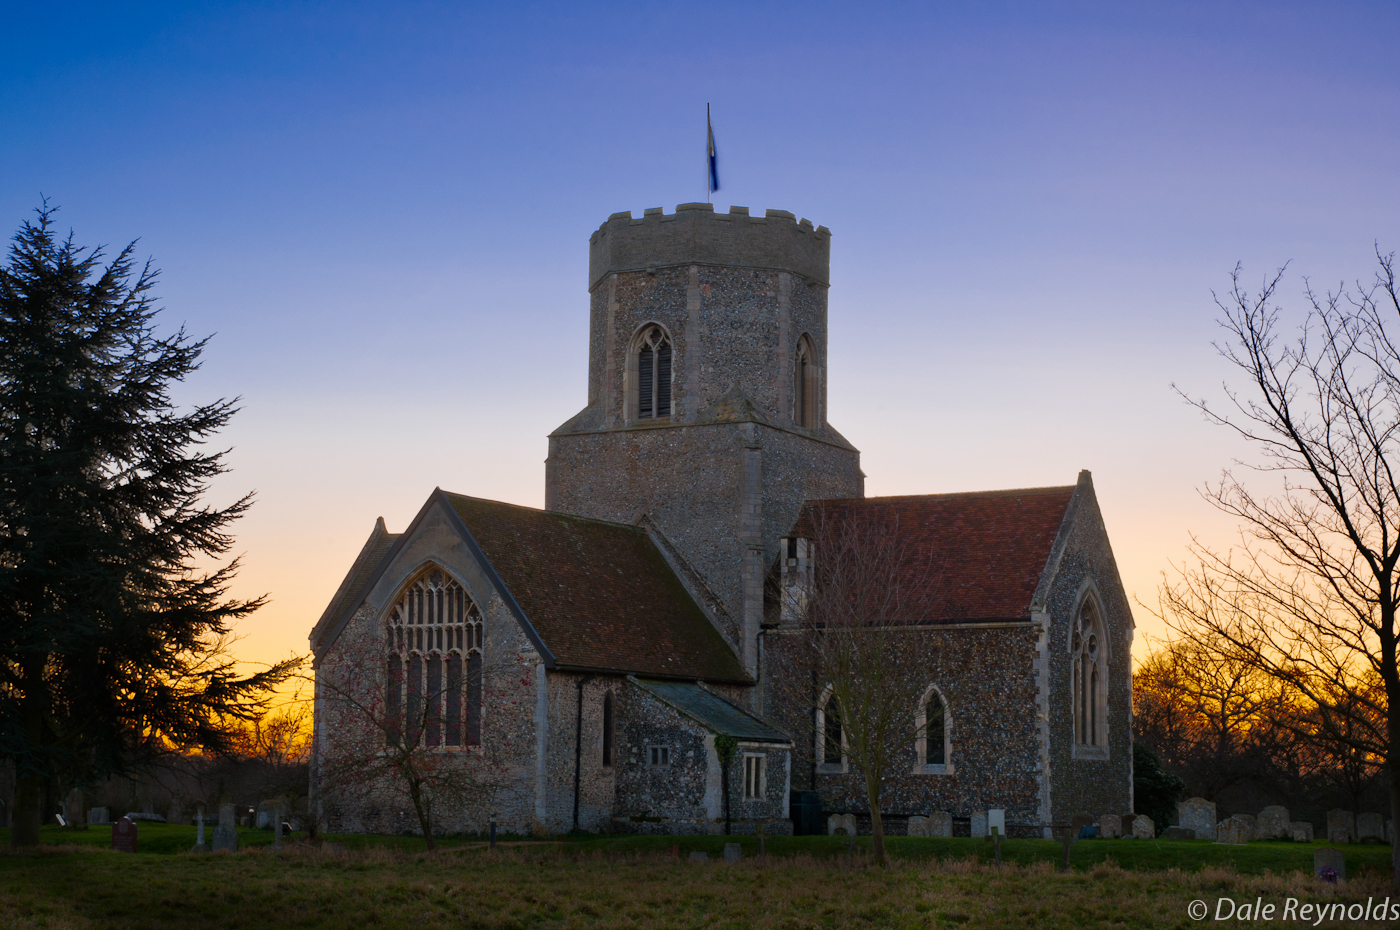 Pakenham Church at sunset